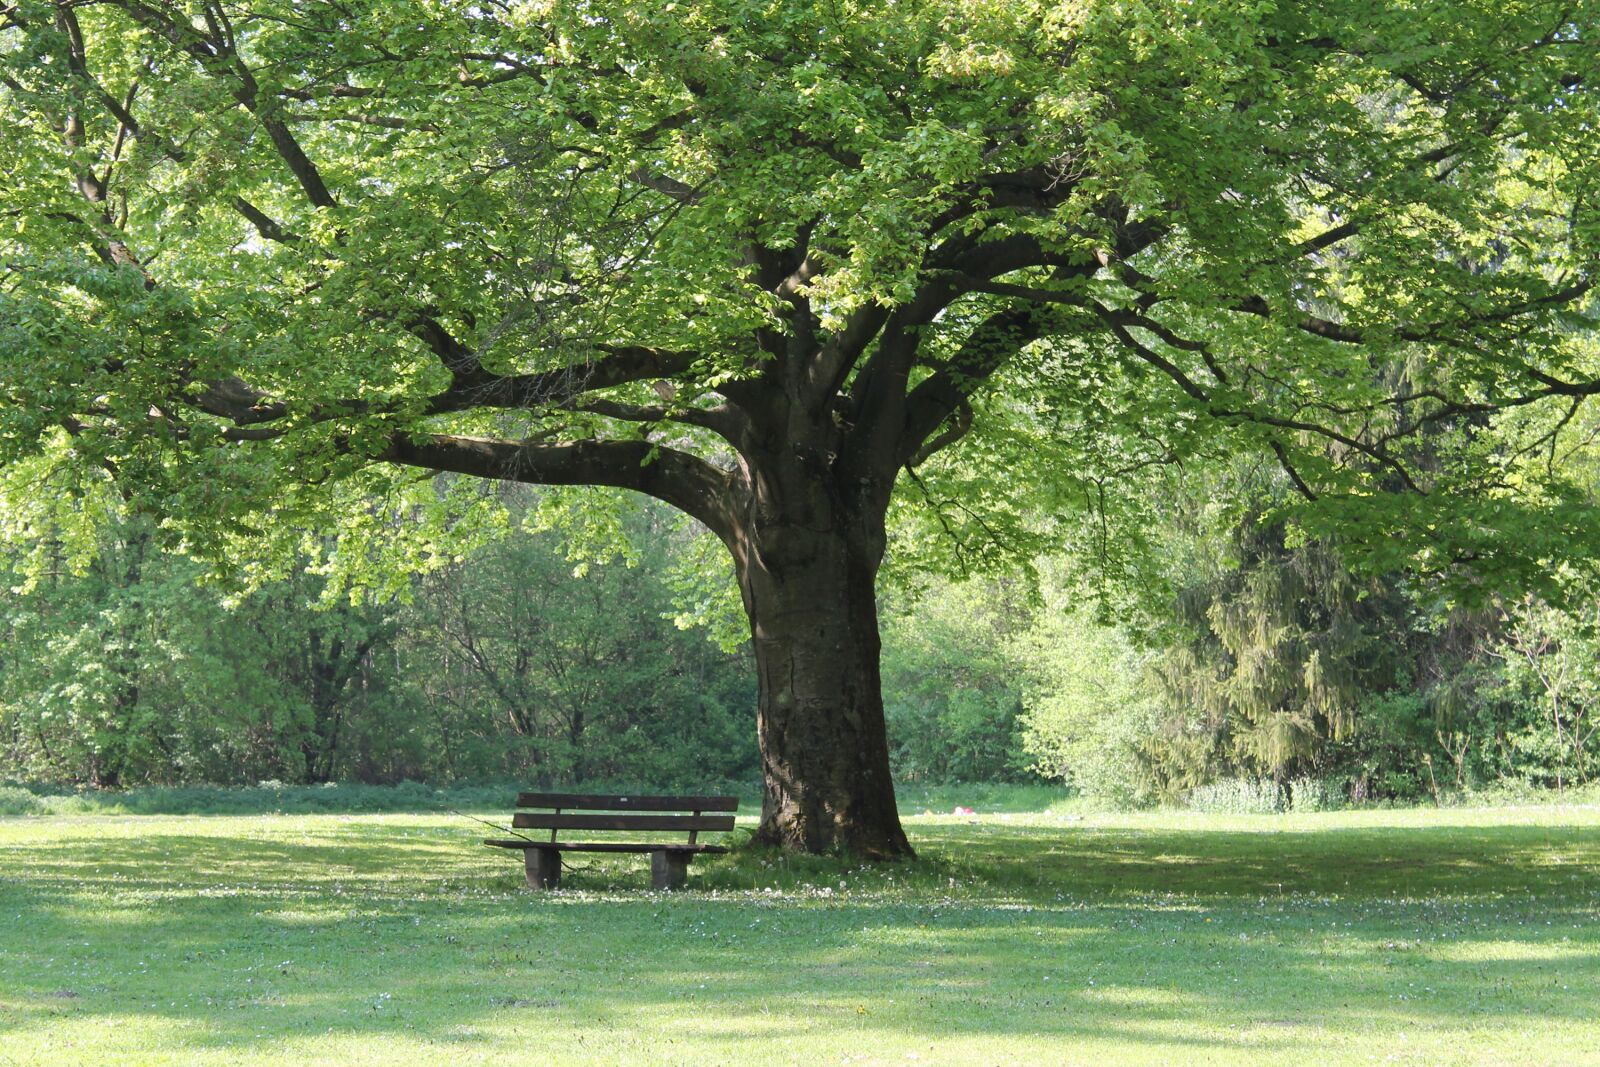 """Canon EOS 1100D (EOS Rebel T3 / EOS Kiss X50) sample photo. """"Tree, nature park, leaves"""" photography"""